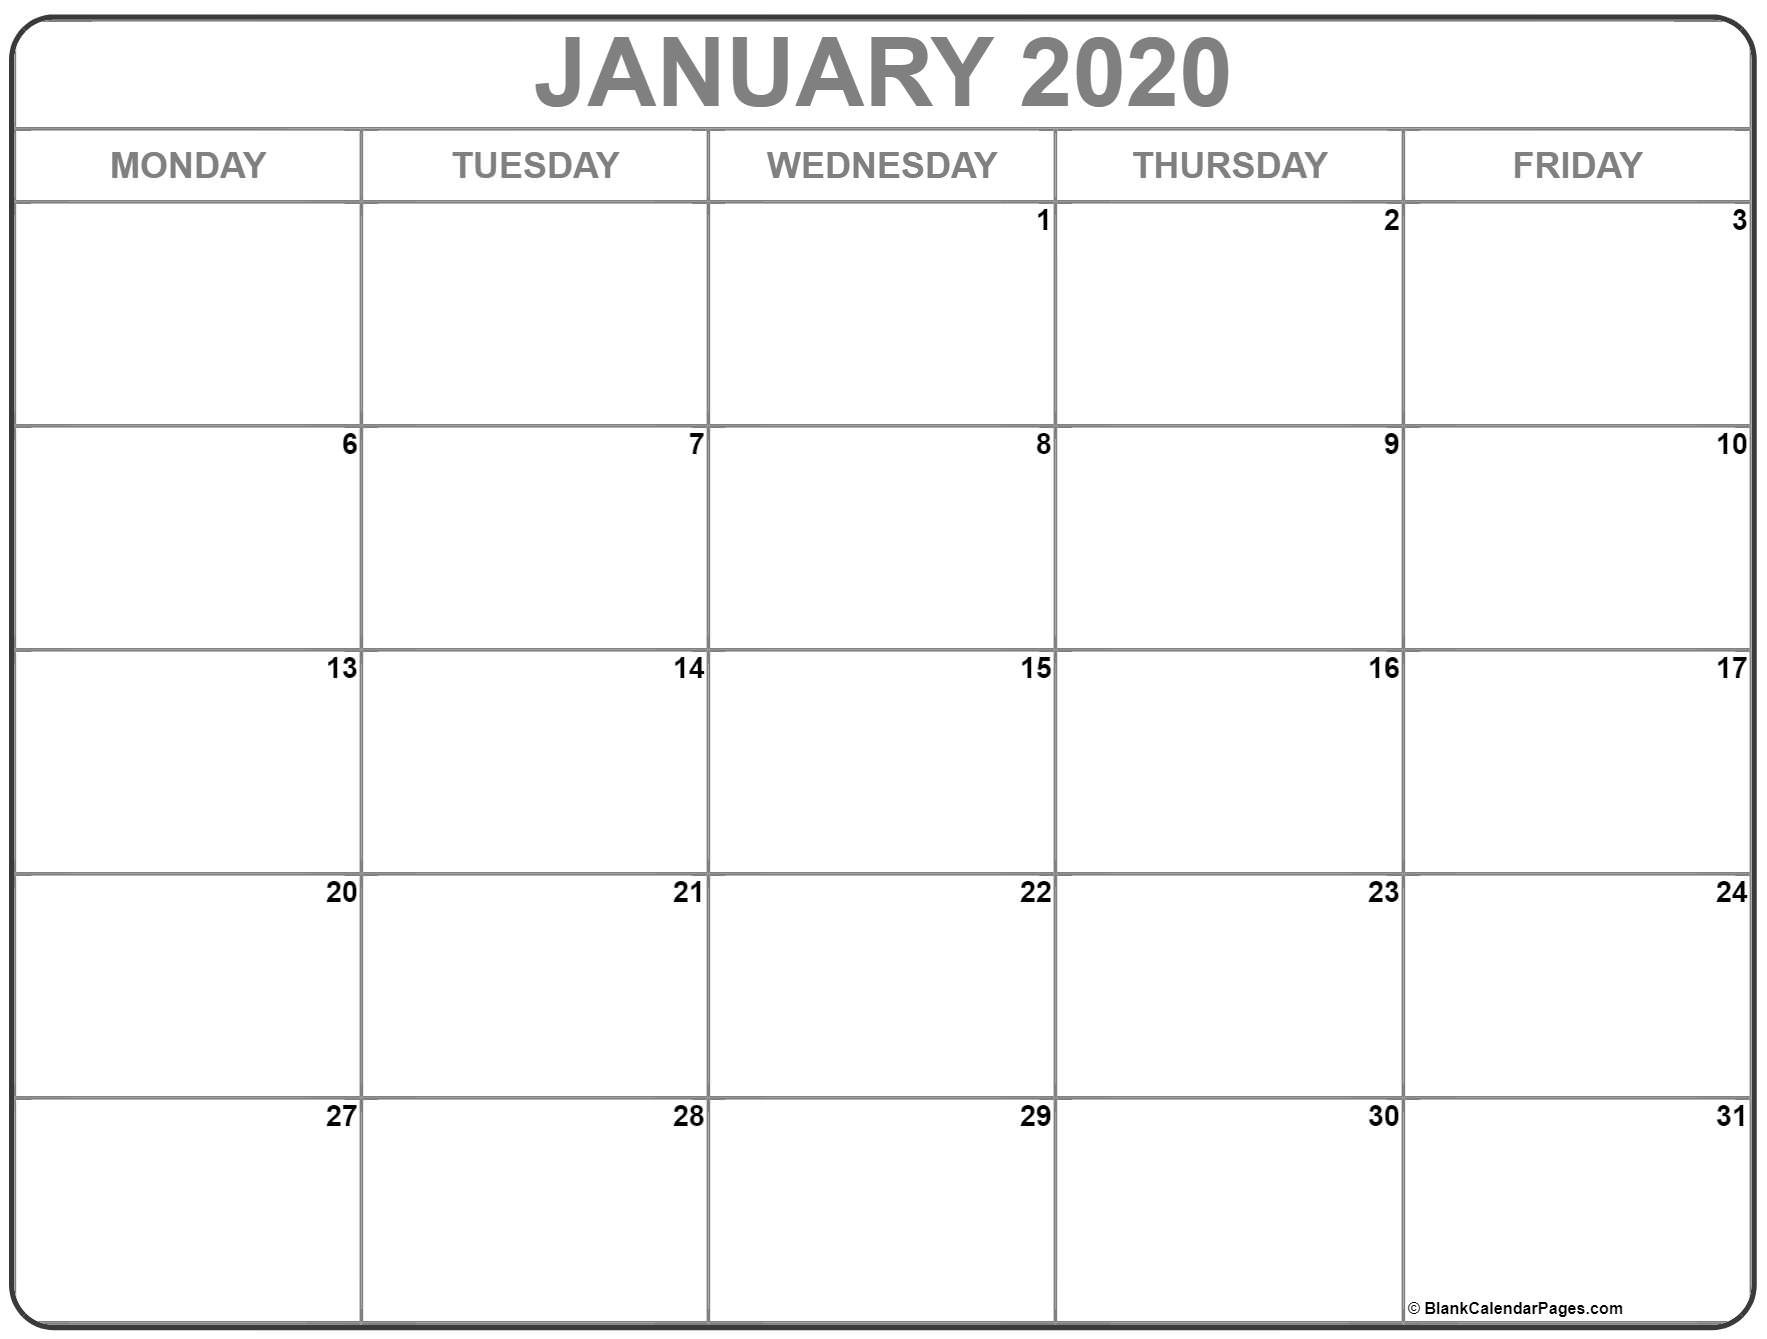 January 2020 Monday Calendar | Monday To Sunday Monday Thru Friday Printable Calendar